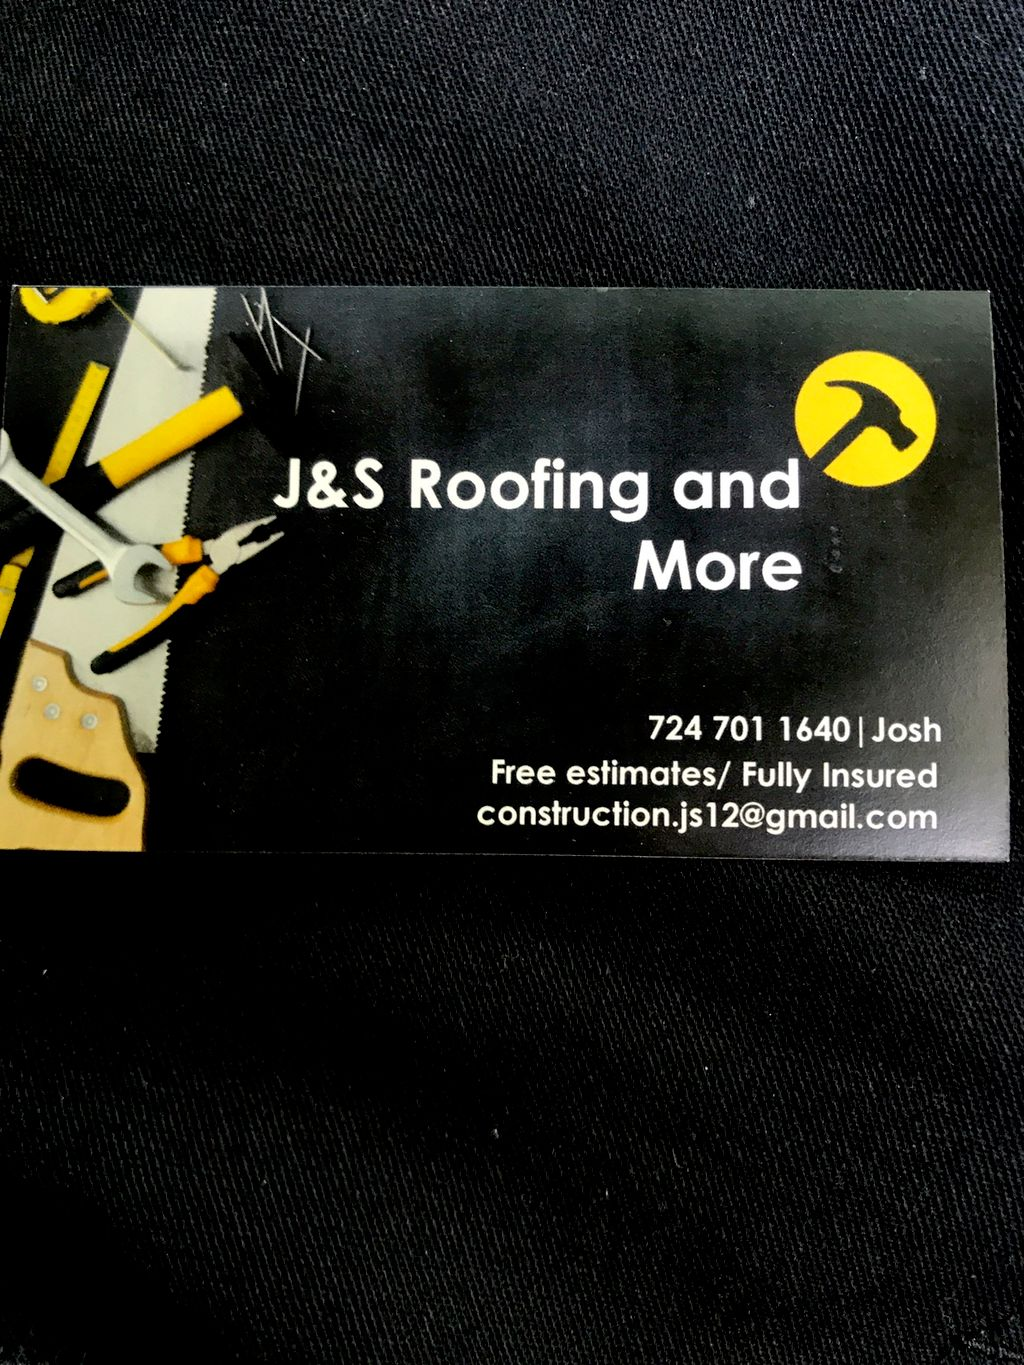 J & S Roofing and more